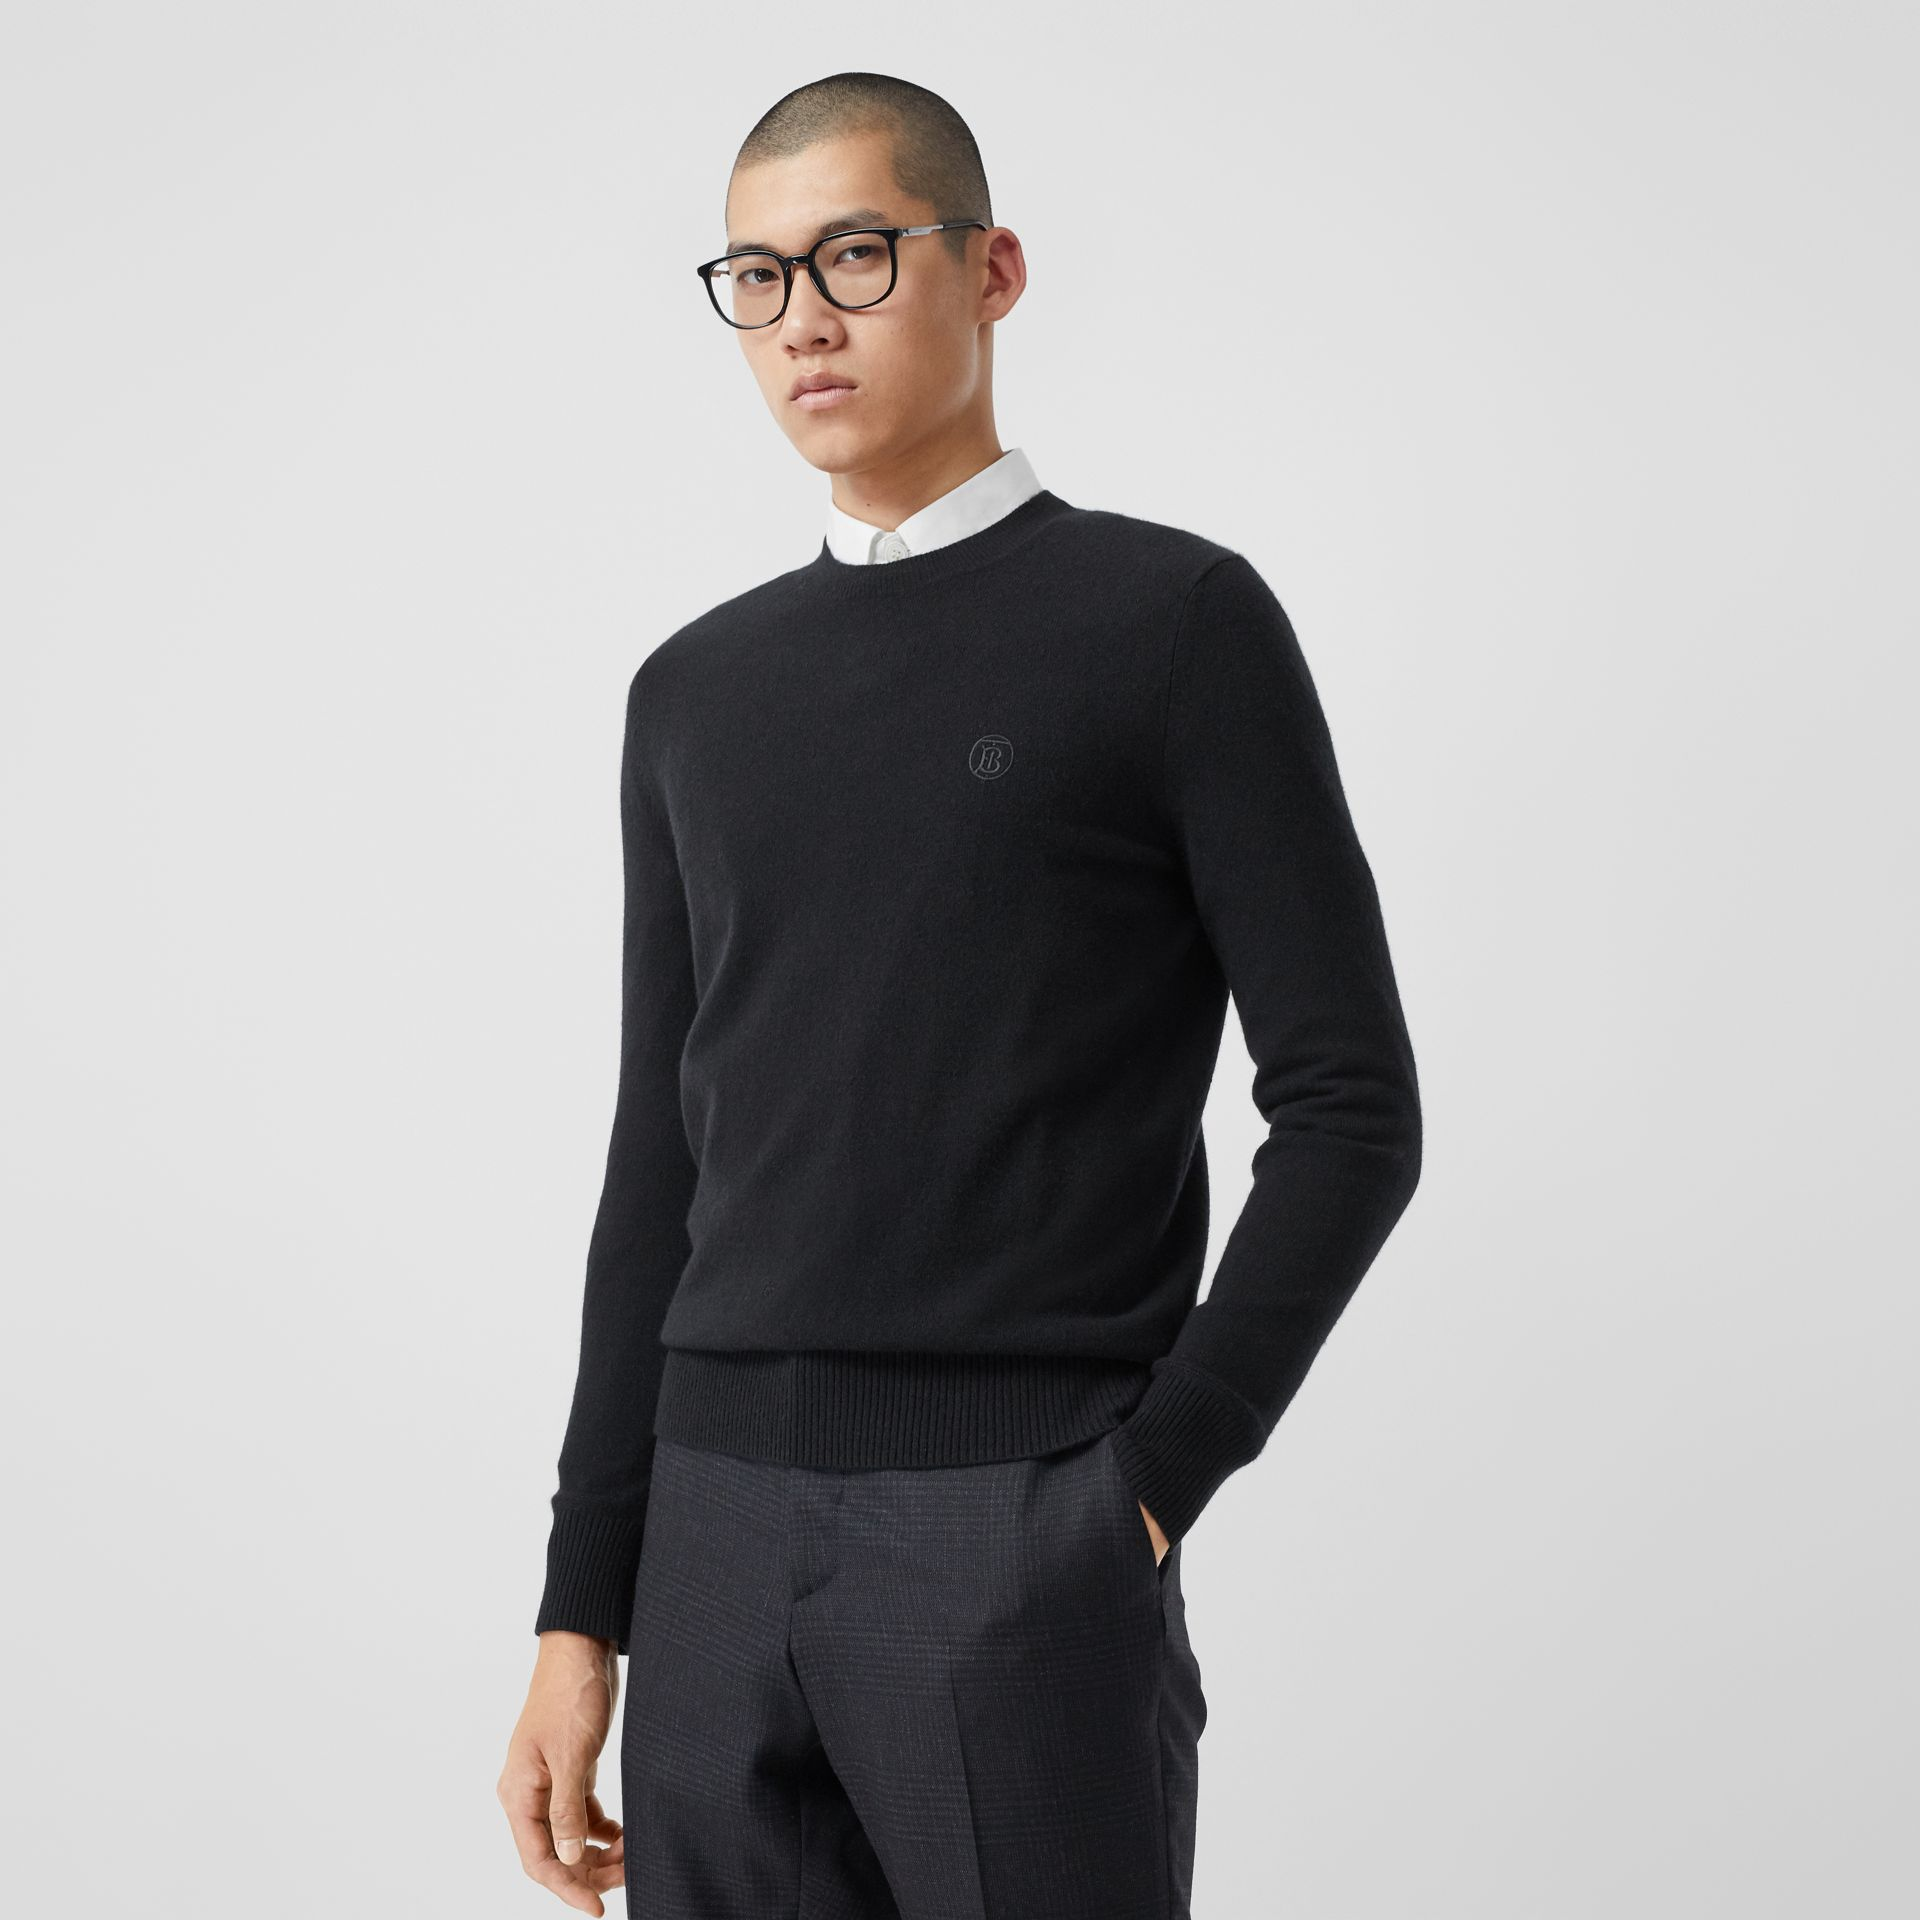 Monogram Motif Cashmere Sweater in Black - Men | Burberry Canada - gallery image 0